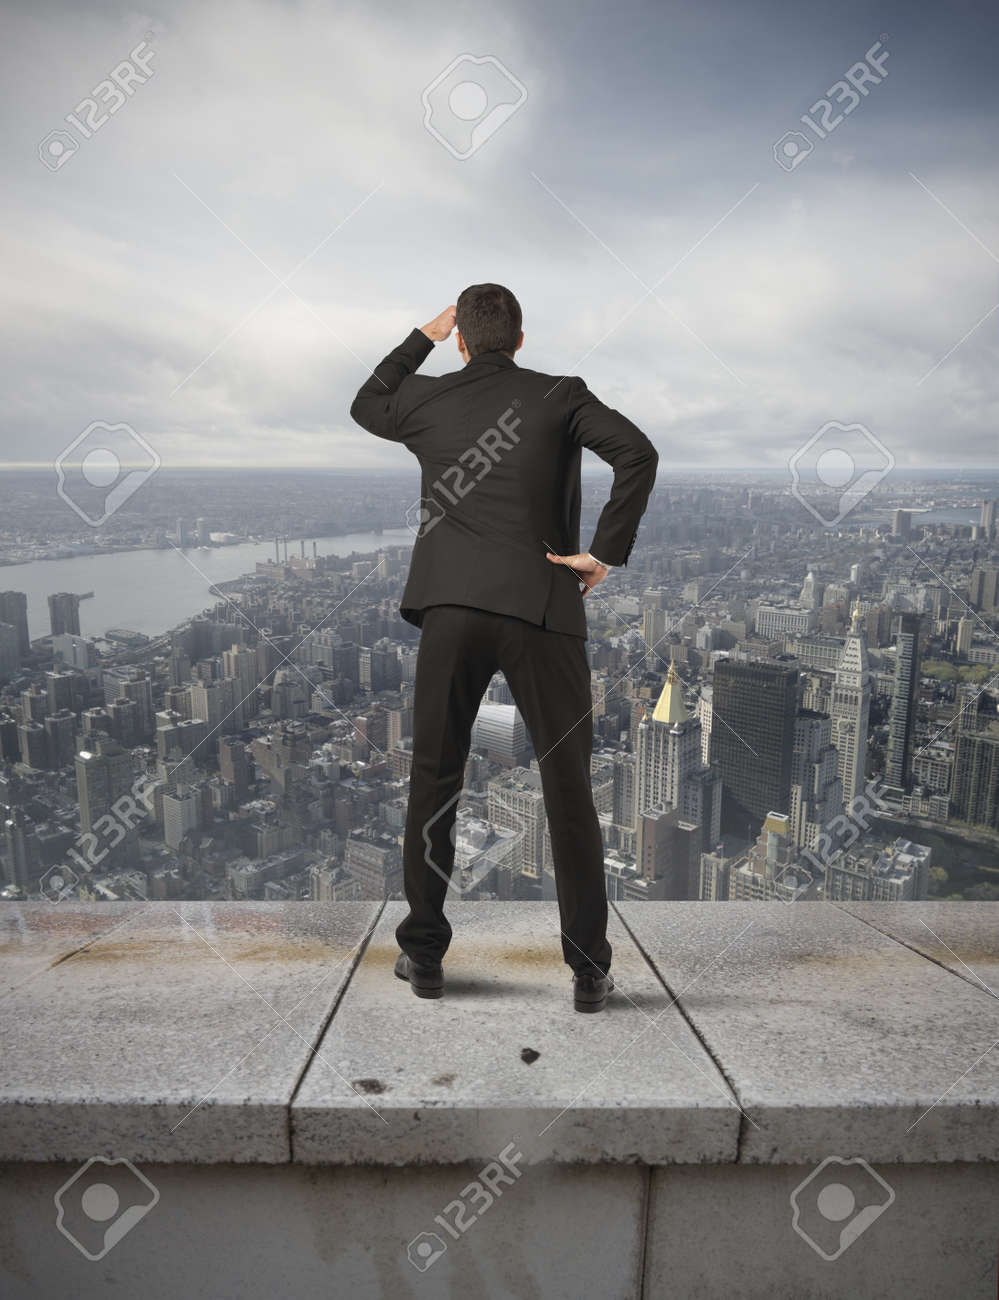 Concept of crisis and future in the business Stock Photo - 21393790